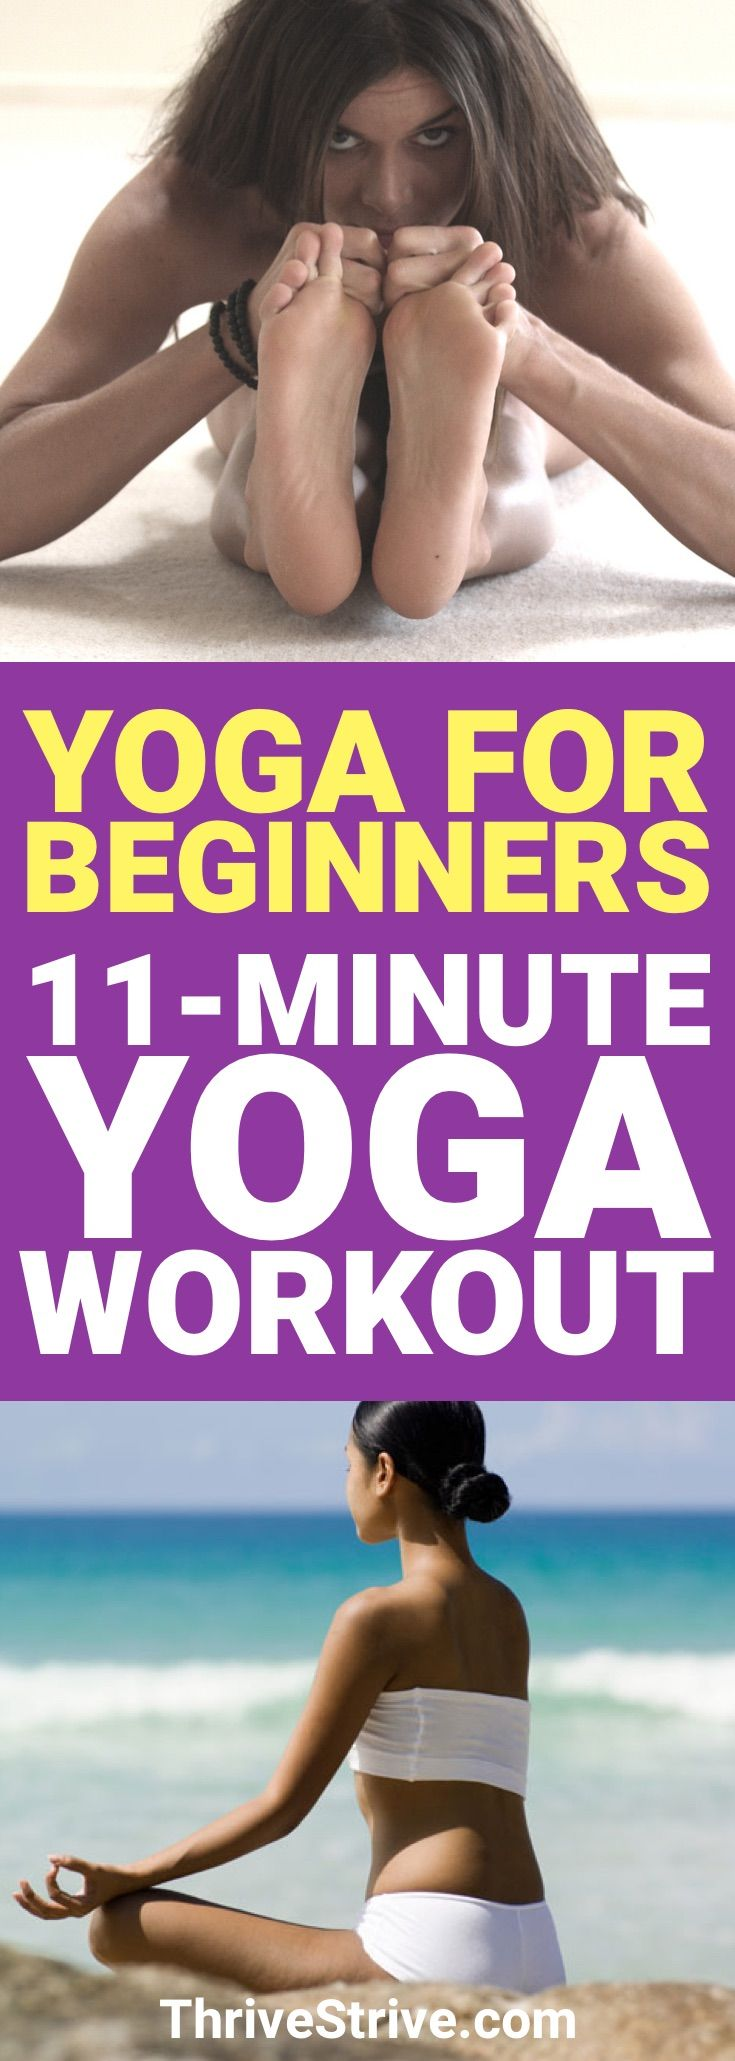 Ready to get started with Yoga? This yoga workout is great for any beginners. It...